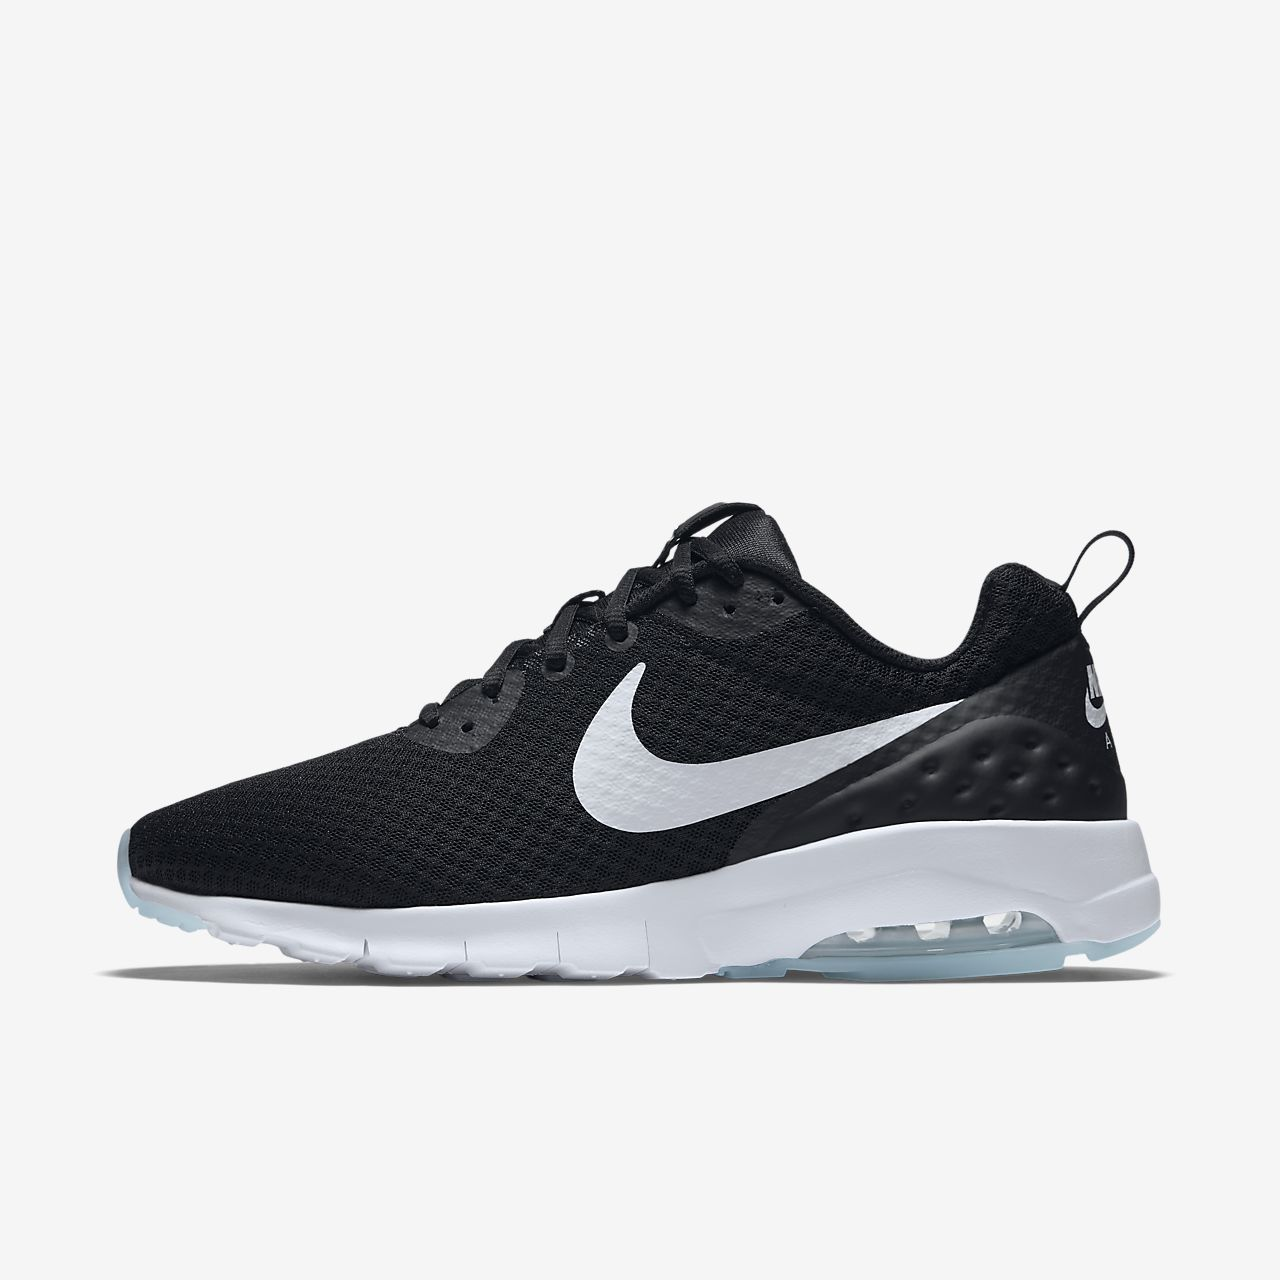 Mens Nike Air Max Motion LW Sneaker Black/White